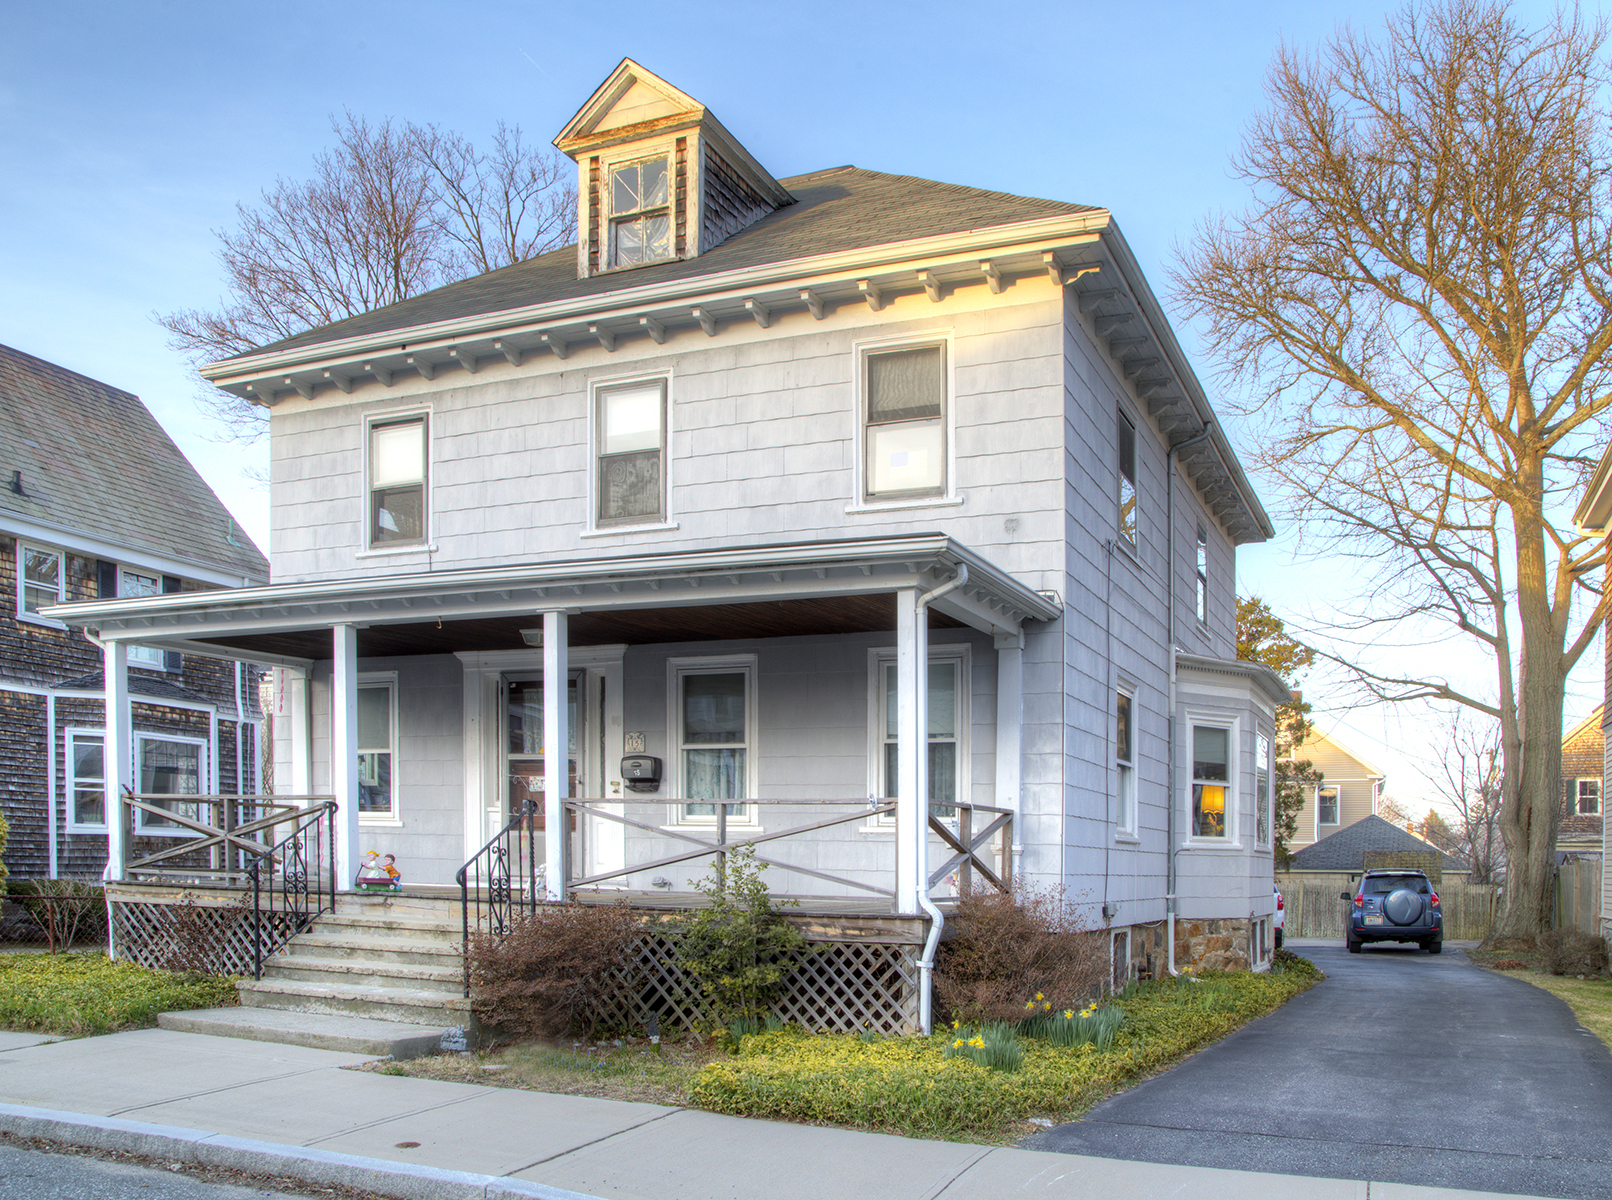 Single Family Home for Sale at Handsome Home near Hospital 15 Bradford Avenue Newport, Rhode Island, 02840 United States